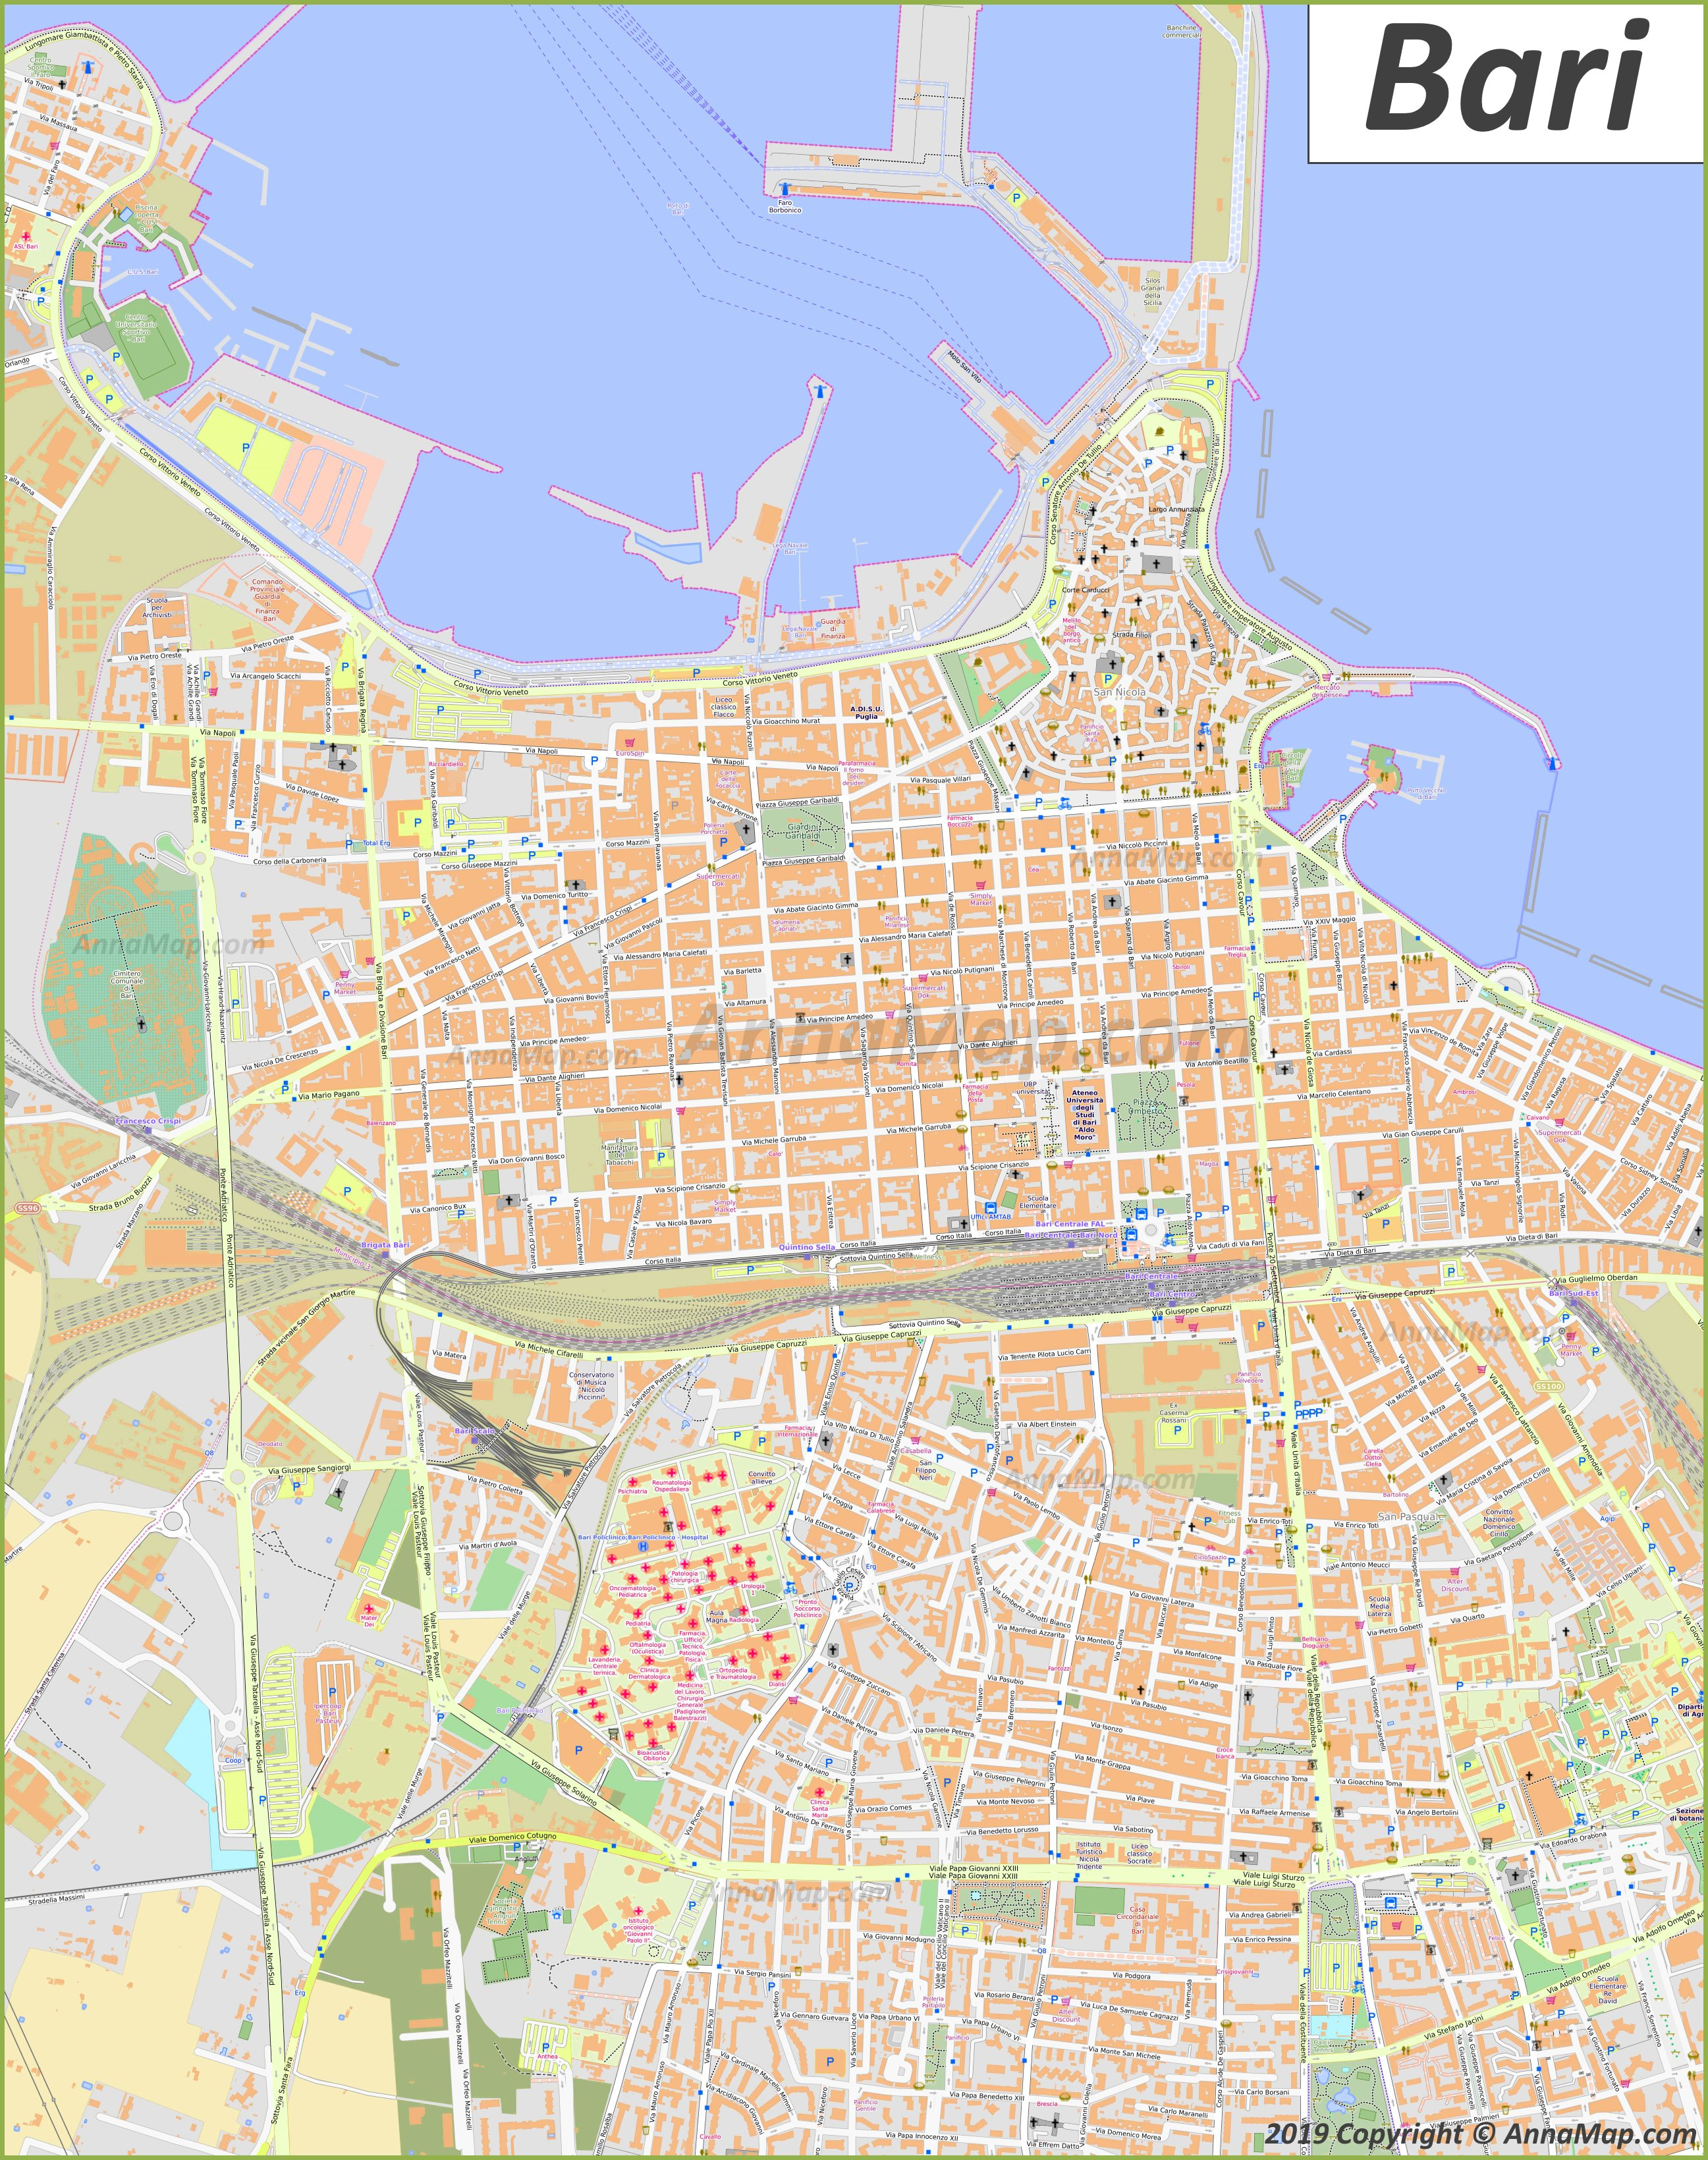 picture relating to Printable Maps of Italy called In depth vacationer maps of Bari Italy No cost printable maps